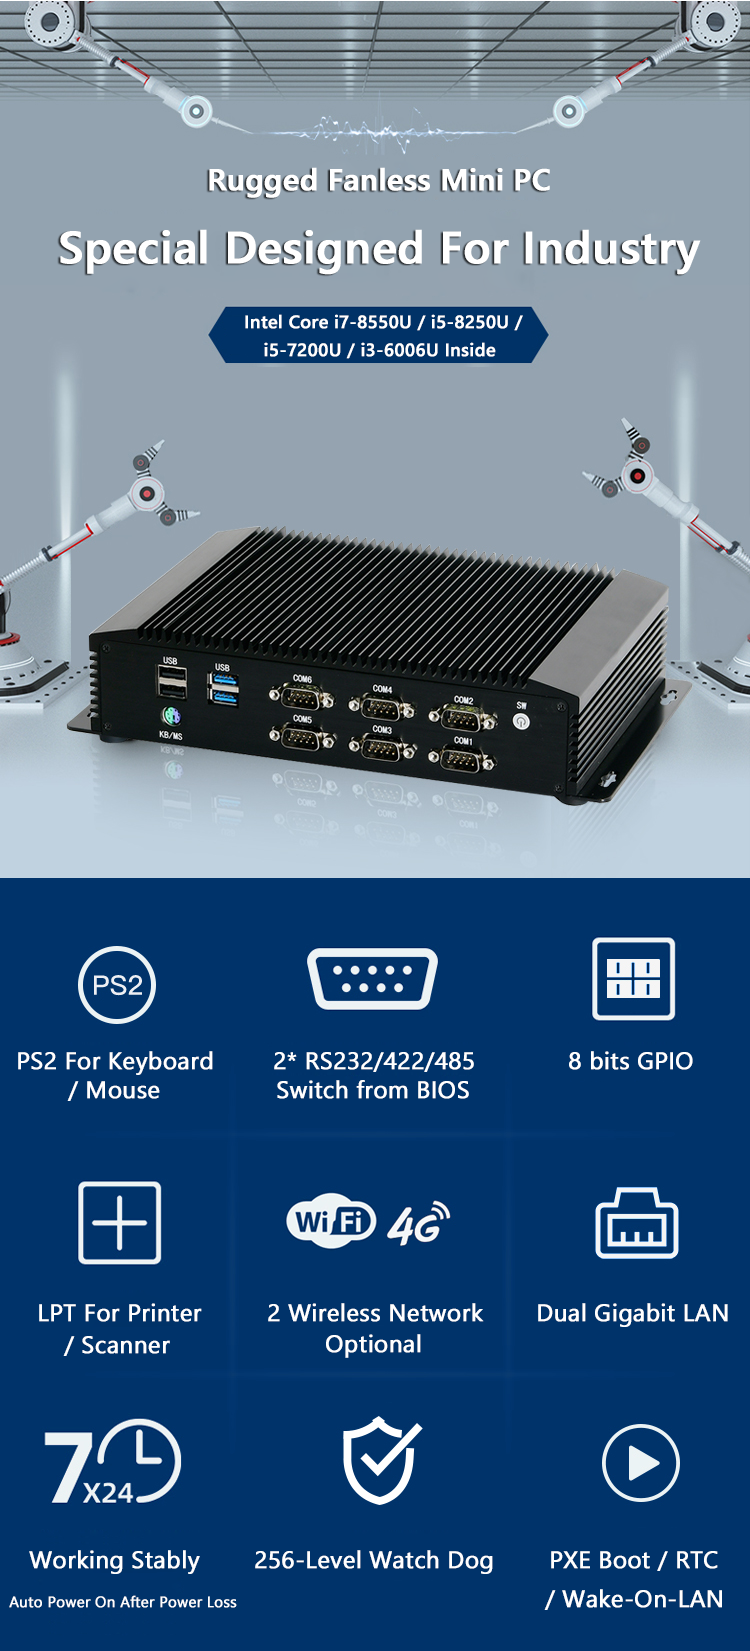 I5 8250U Quad Core Fanless PC Embedded SOC System 2 Intel LAN m-PCIe WiFi 4G Robuste Mini ITX Industrie Computer Mit GPIO RS485